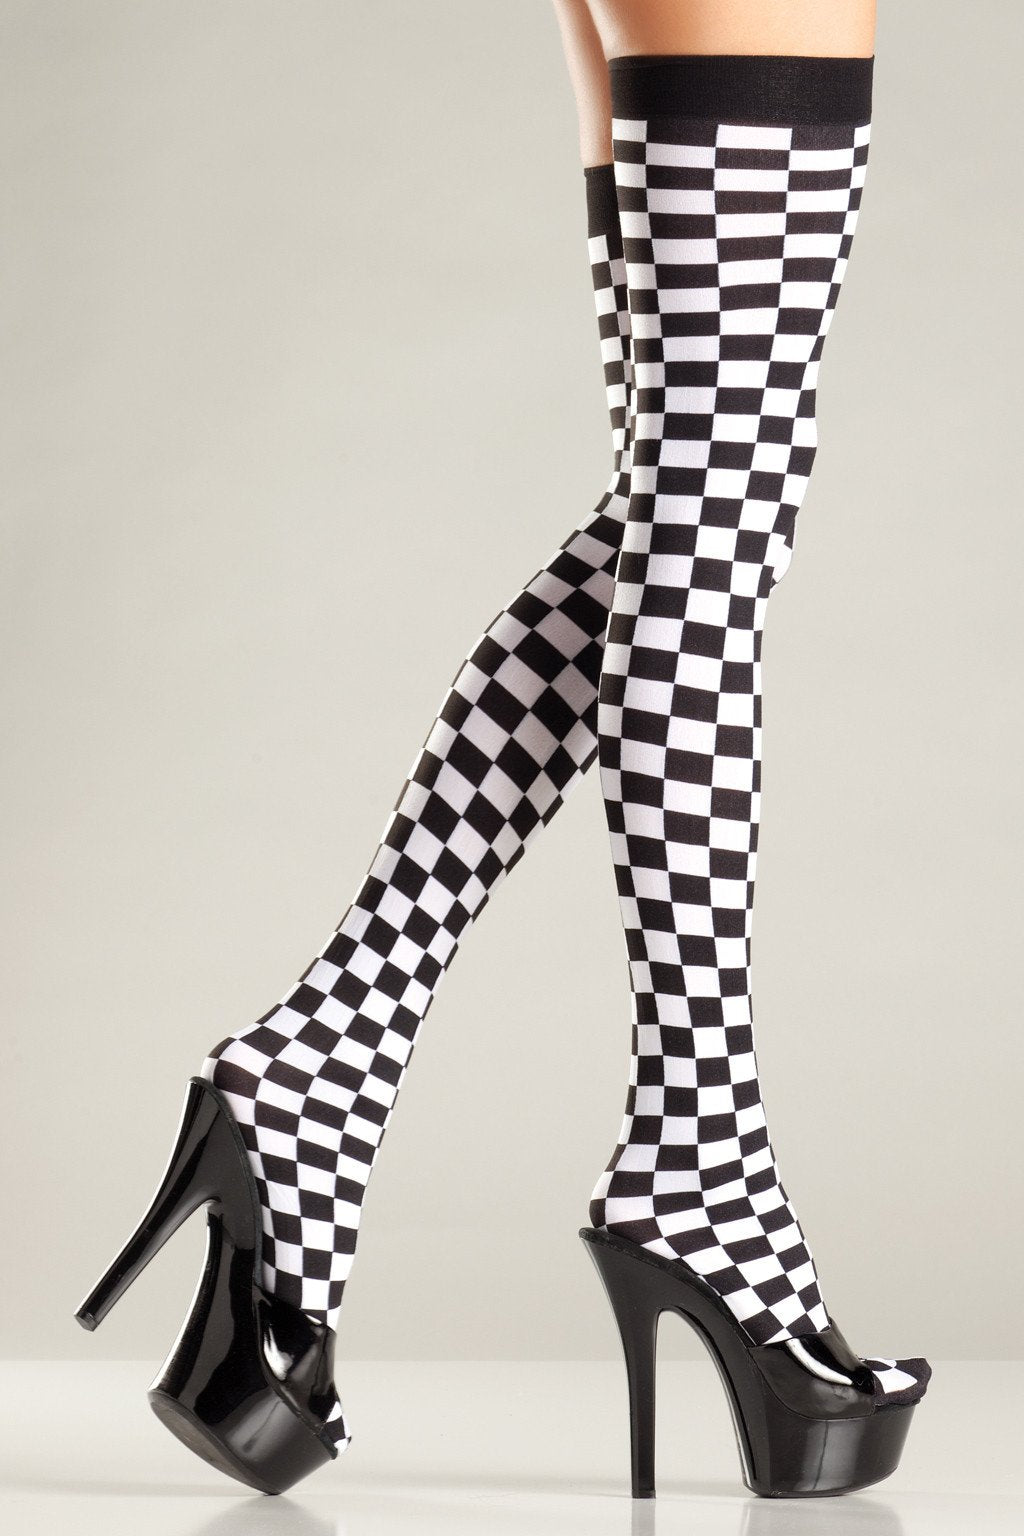 LALA TRENDS Be Wicked Checkerboard Thigh Highs Hosiery $9.95